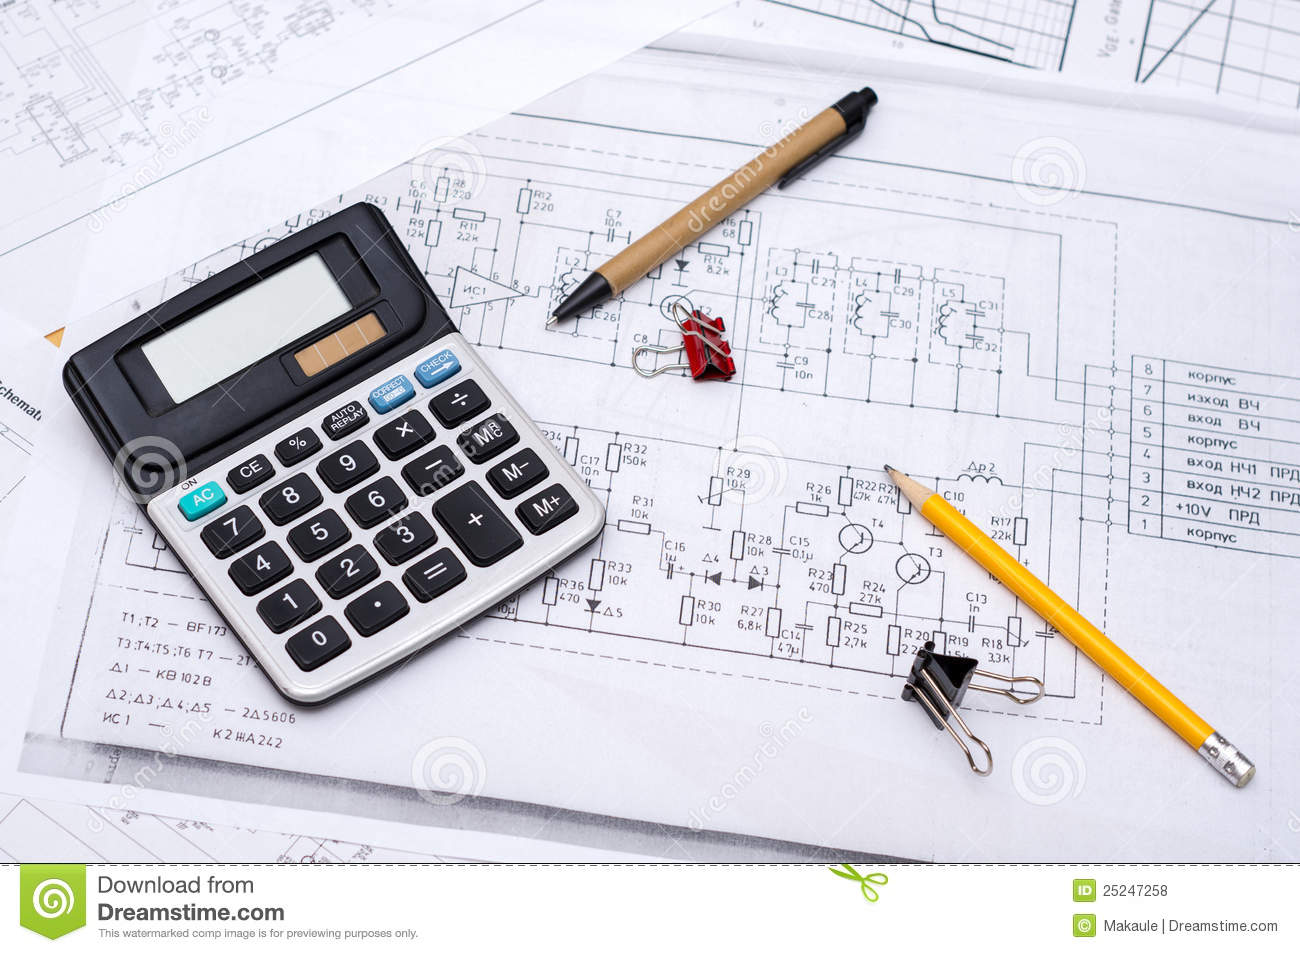 Electrical Engineering Circuit Plans Stock Image - Image: 11281641